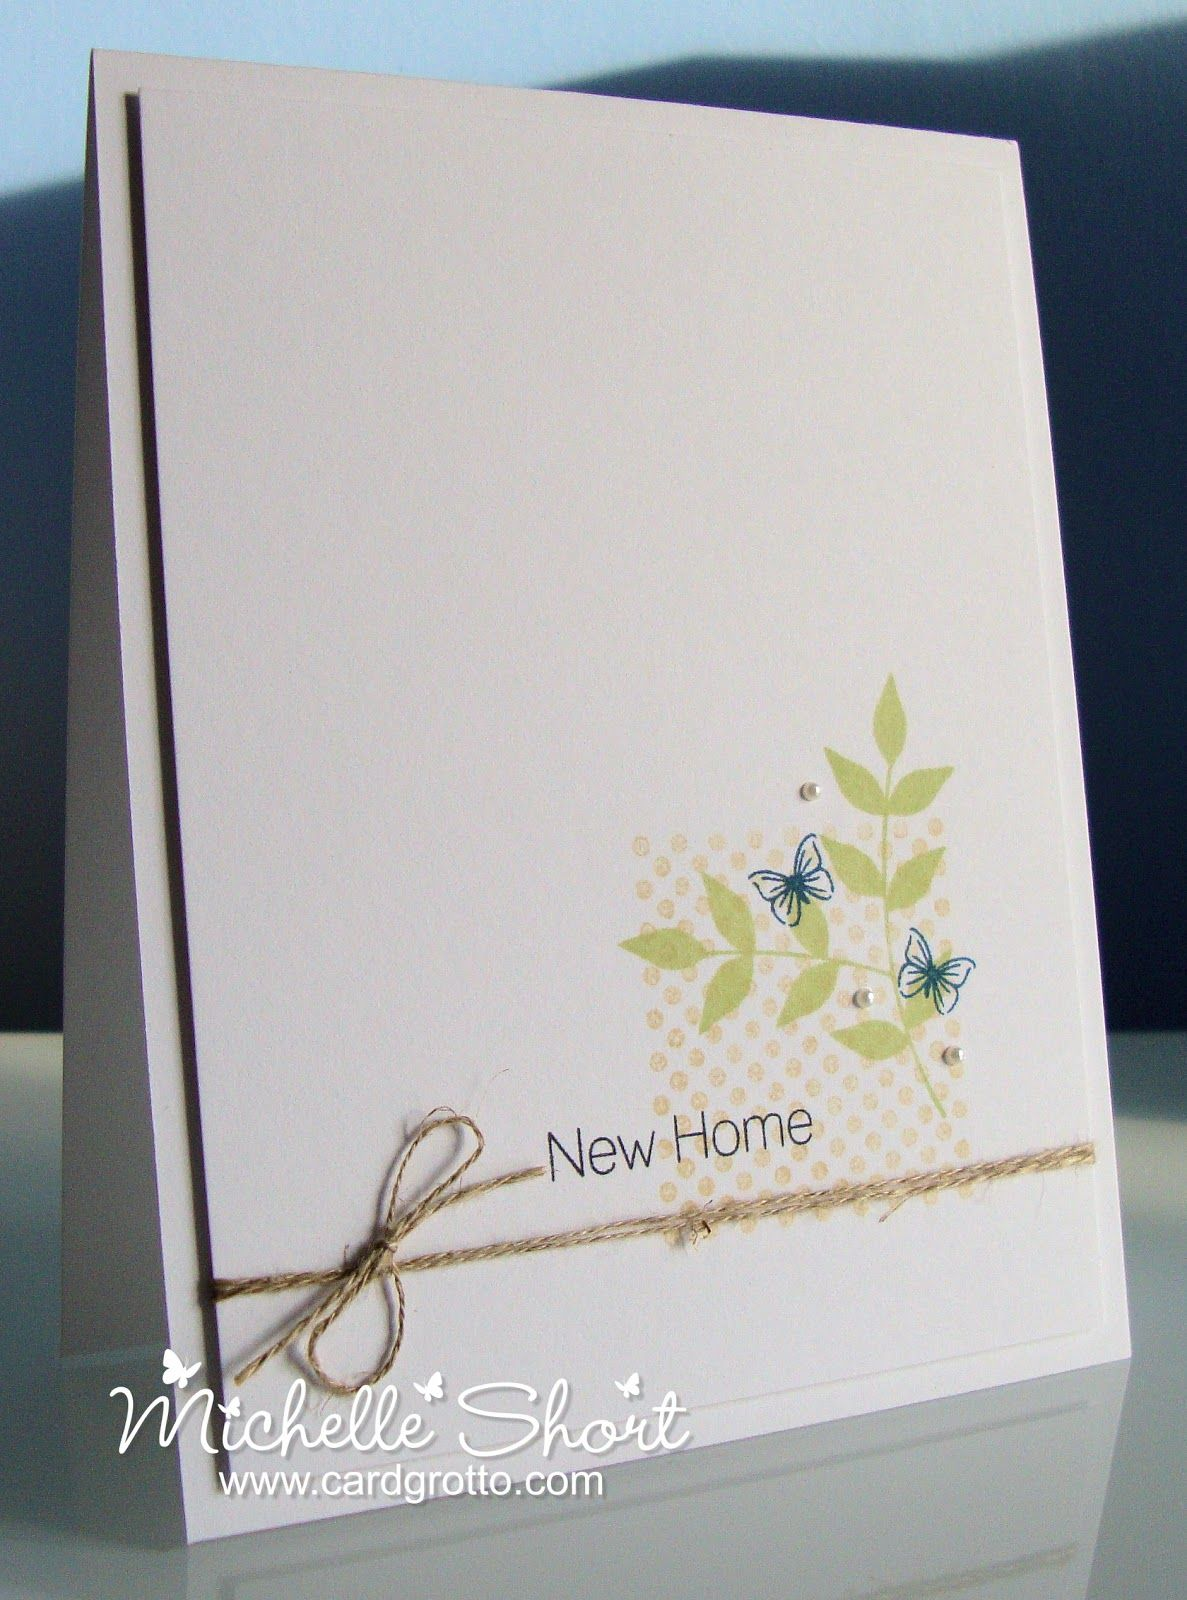 The Card Grotto: New Home   Flower Cards   Pinterest   Cards, Card ...